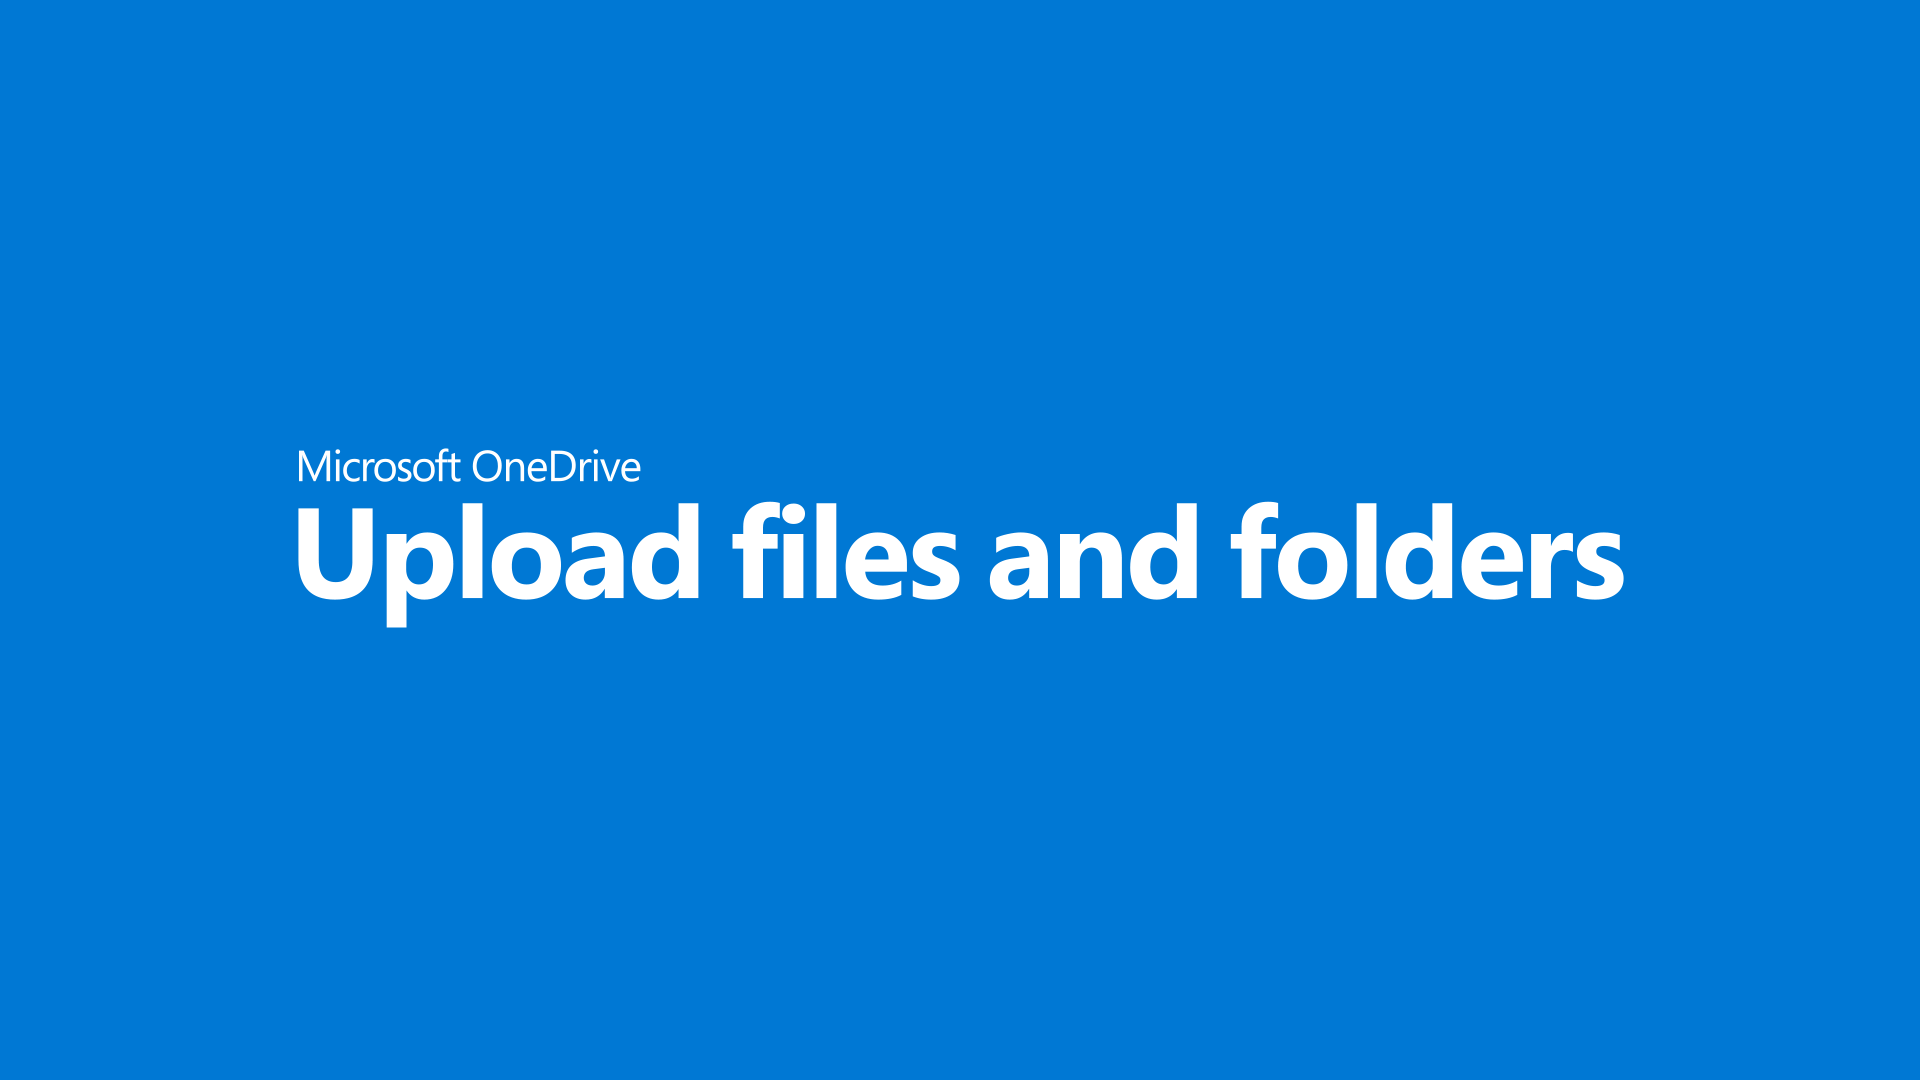 Upload files and folders to OneDrive